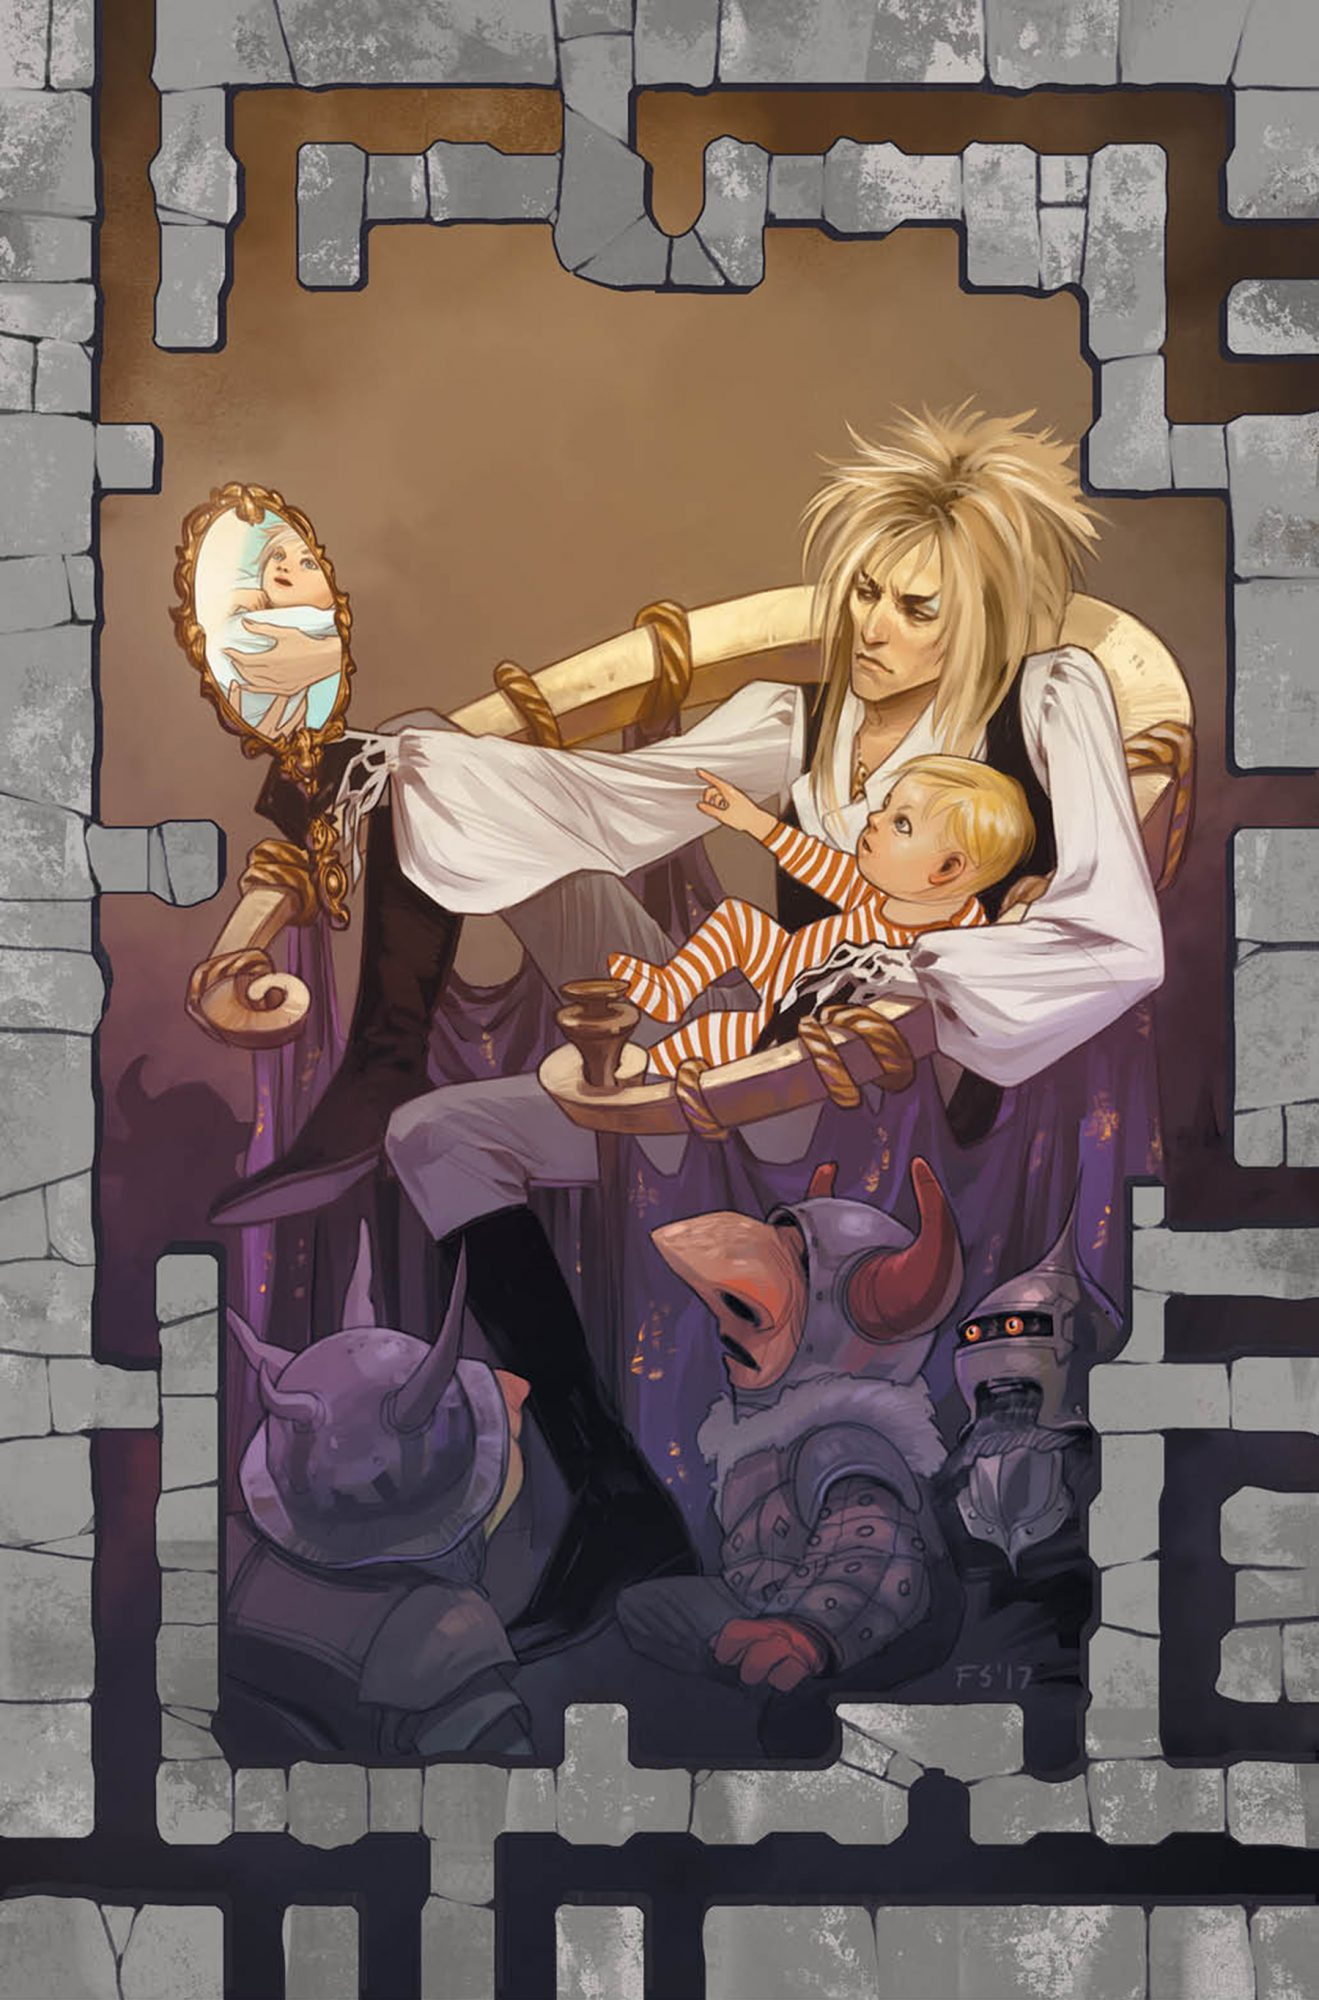 Labyrinth_001_A_Main_FionaStaples